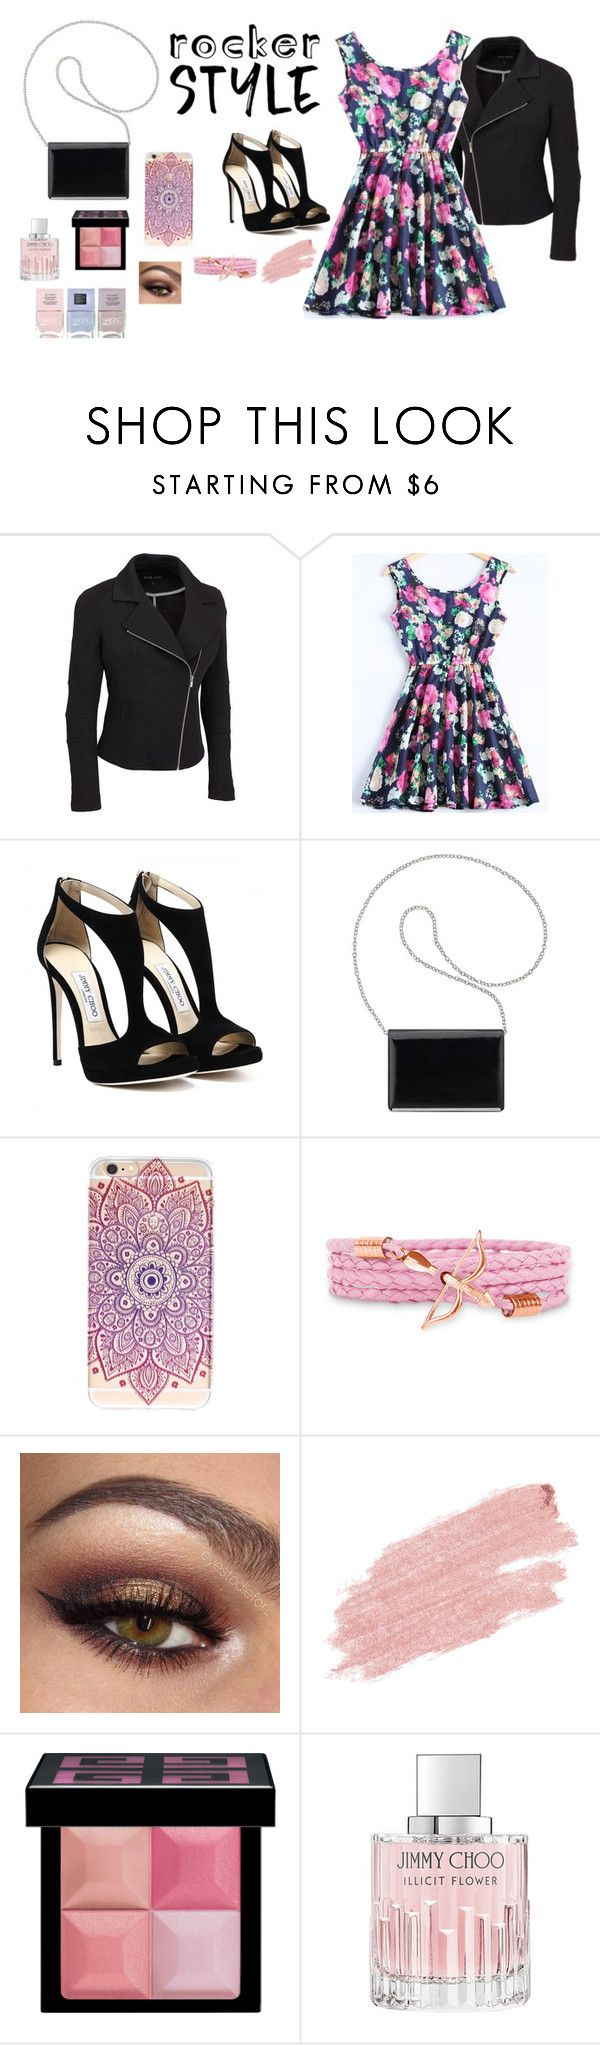 """""""Rocker Chic"""" by shoppingismycardio99 ❤ liked on Polyvore featuring Nine West, Jane Iredale, Givenchy, Jimmy Choo, Nails Inc., rockerchic, rockerstyle and plus size clothing"""